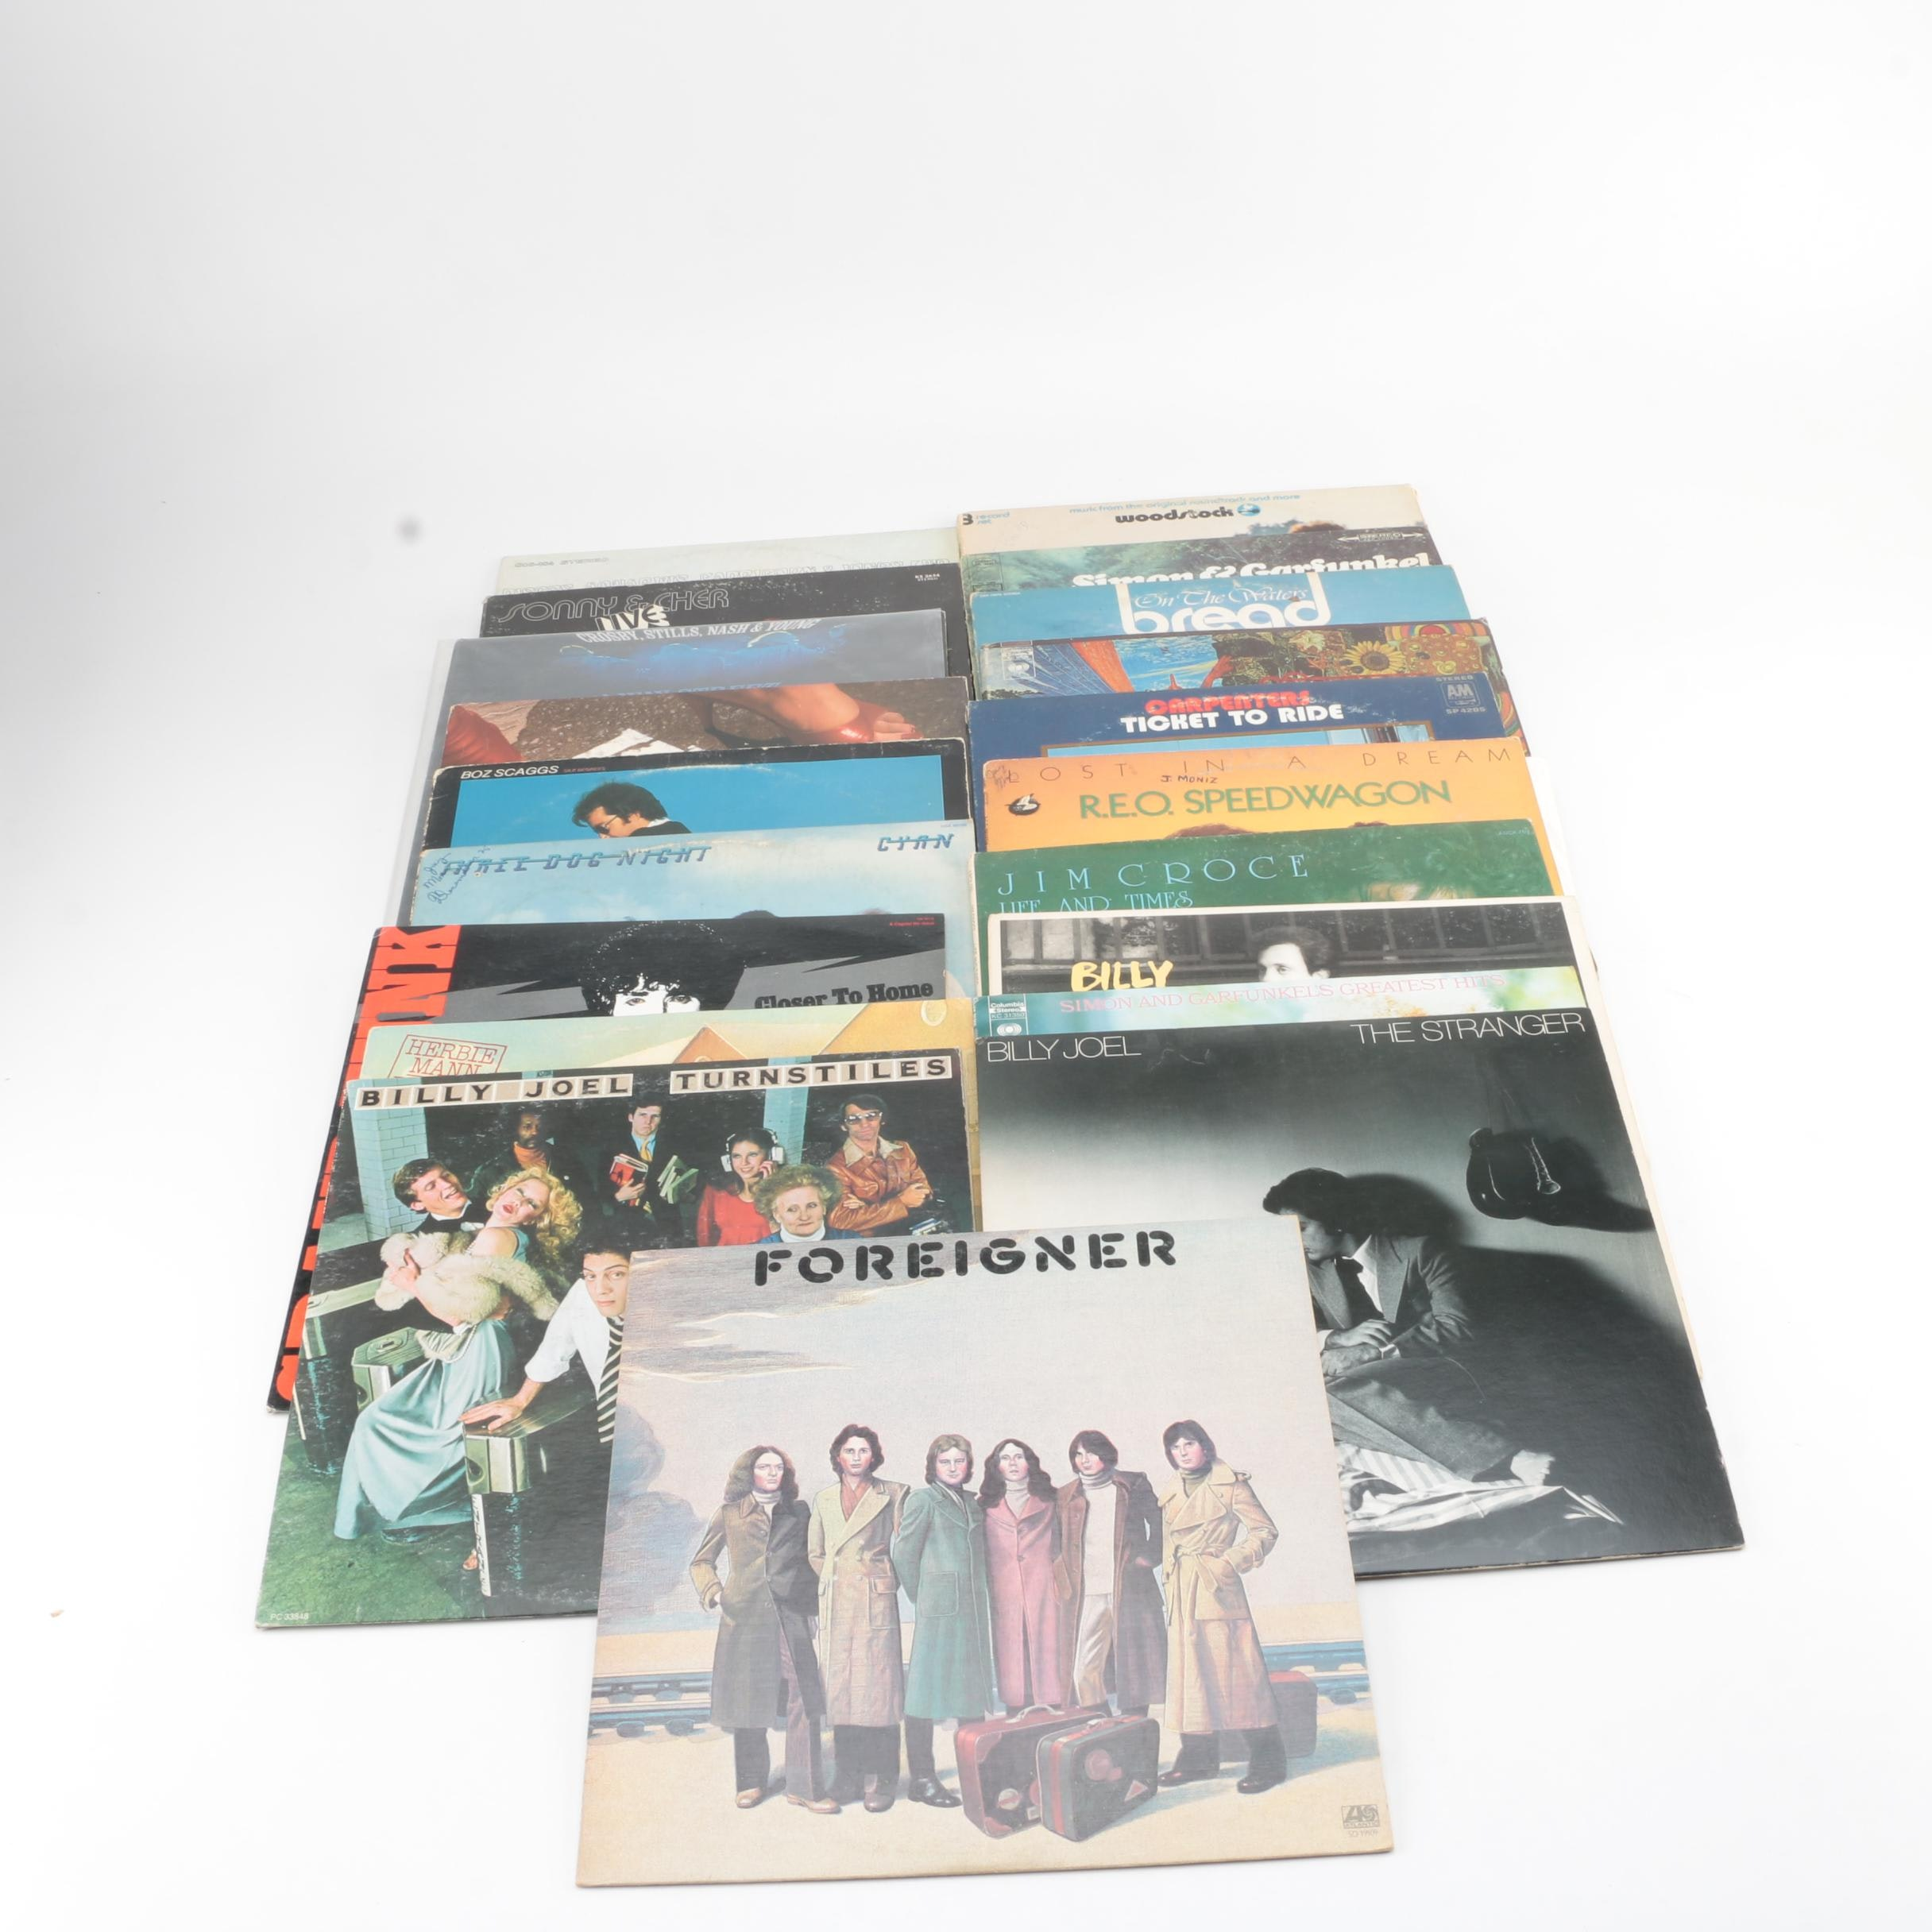 Foreigner, Billy Joel, Eric Clapton, Jim Croce, Simon and Garfunkel, and Other Records